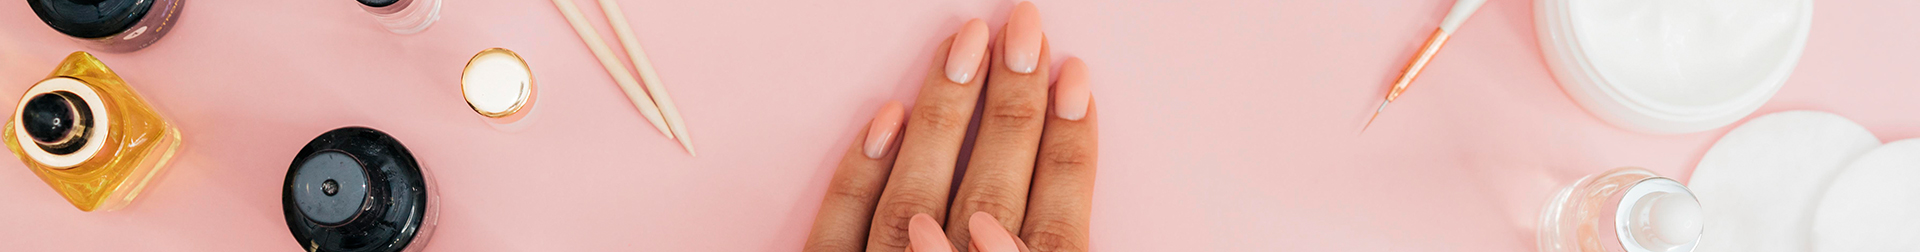 Nail Makeup Products   Nail Care: Buy Nail Care Products   AromaCraze